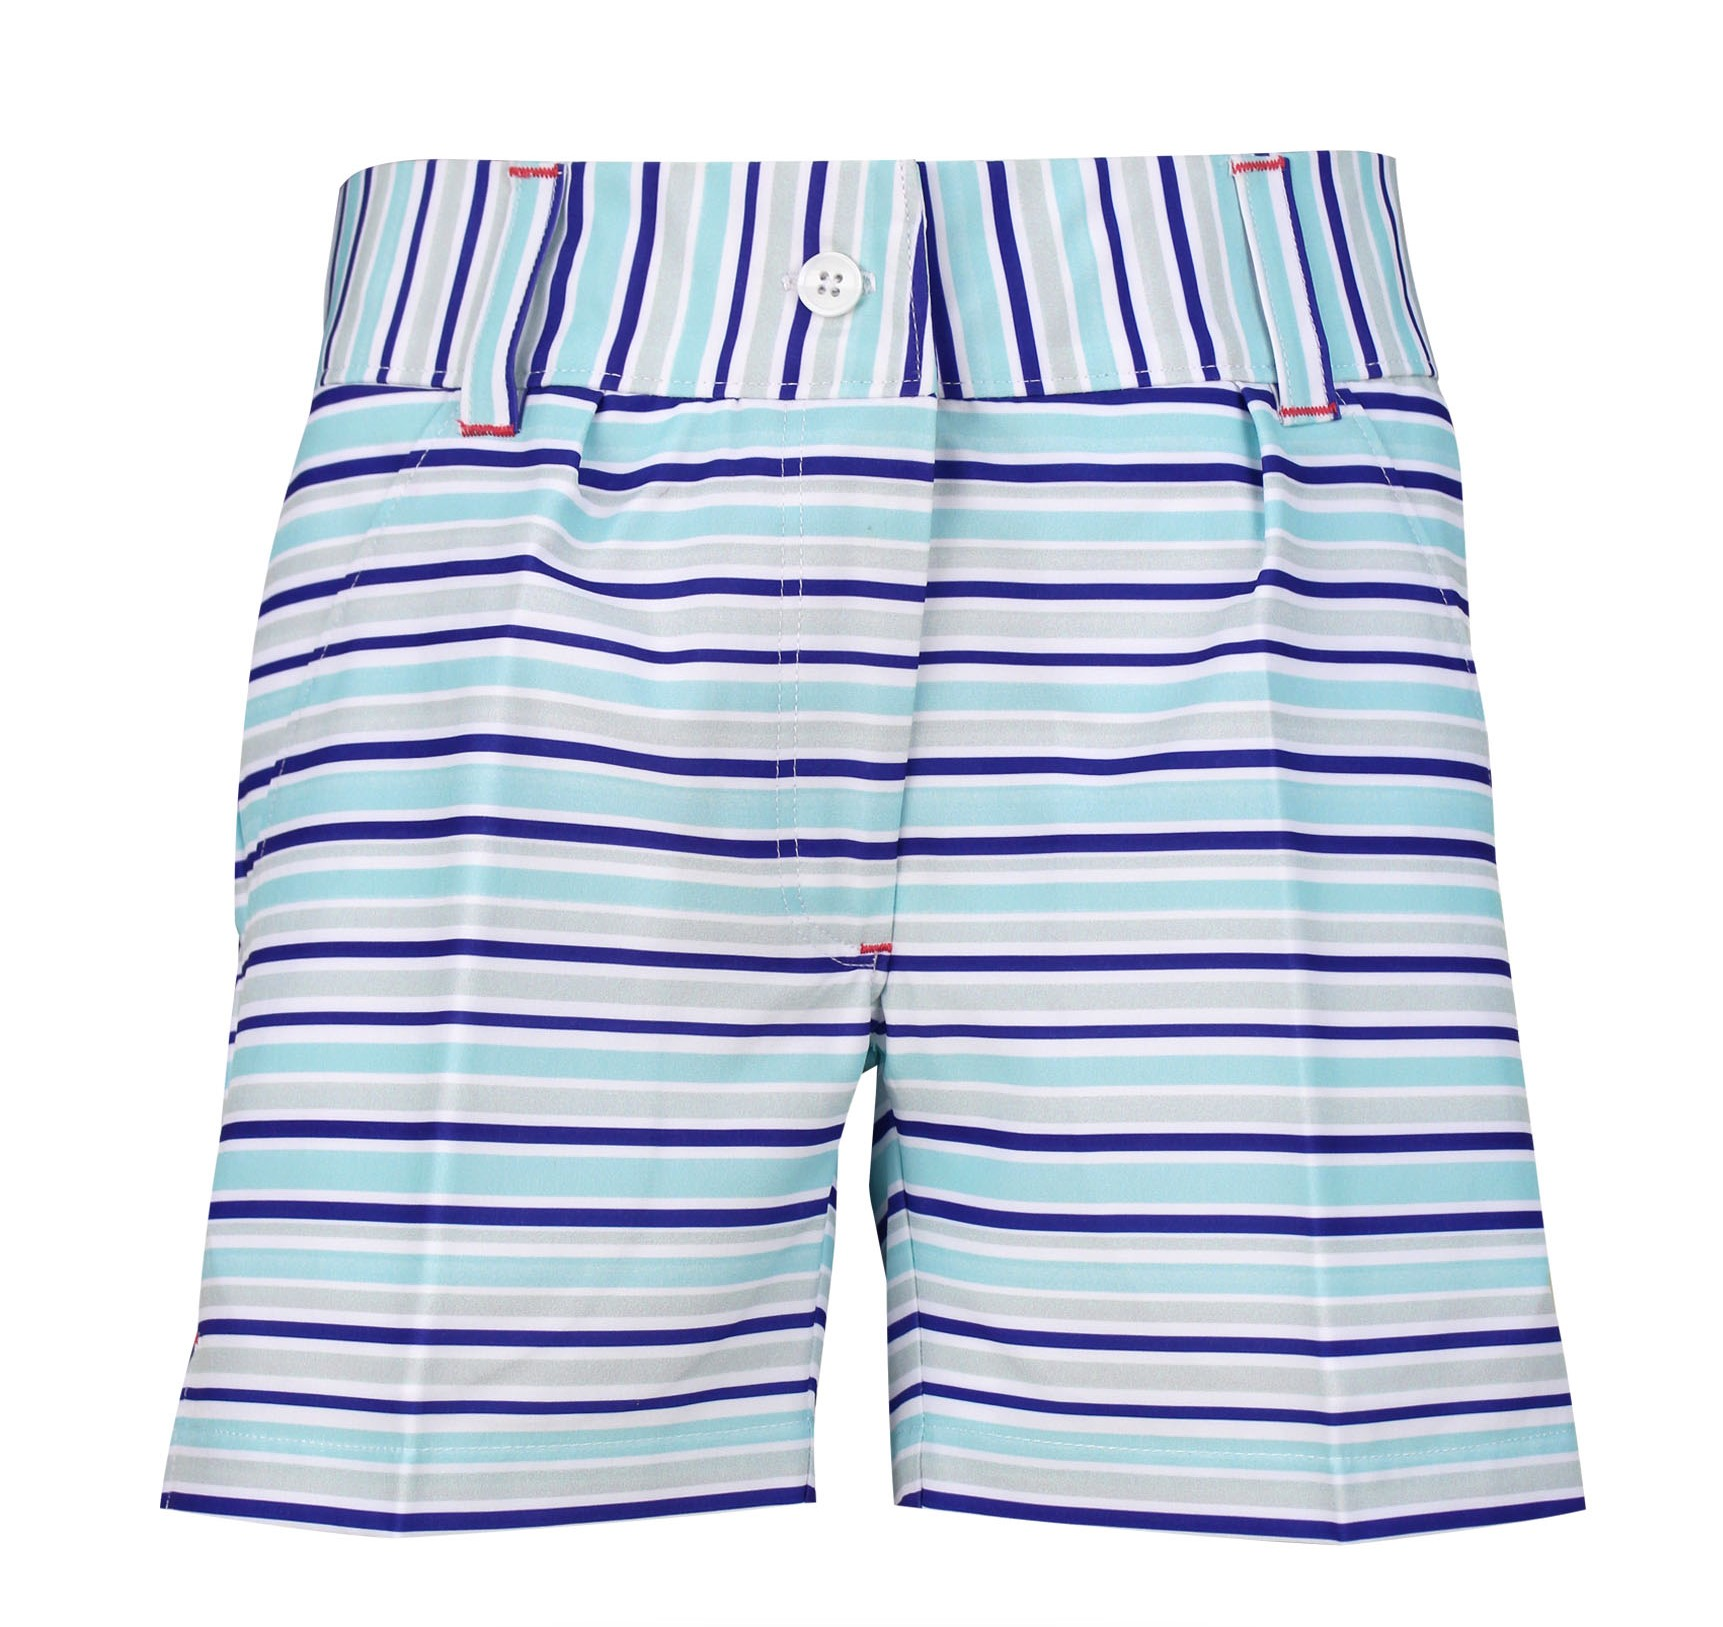 Kira Girls Golf & Tennis Shorts in Blue Stripe